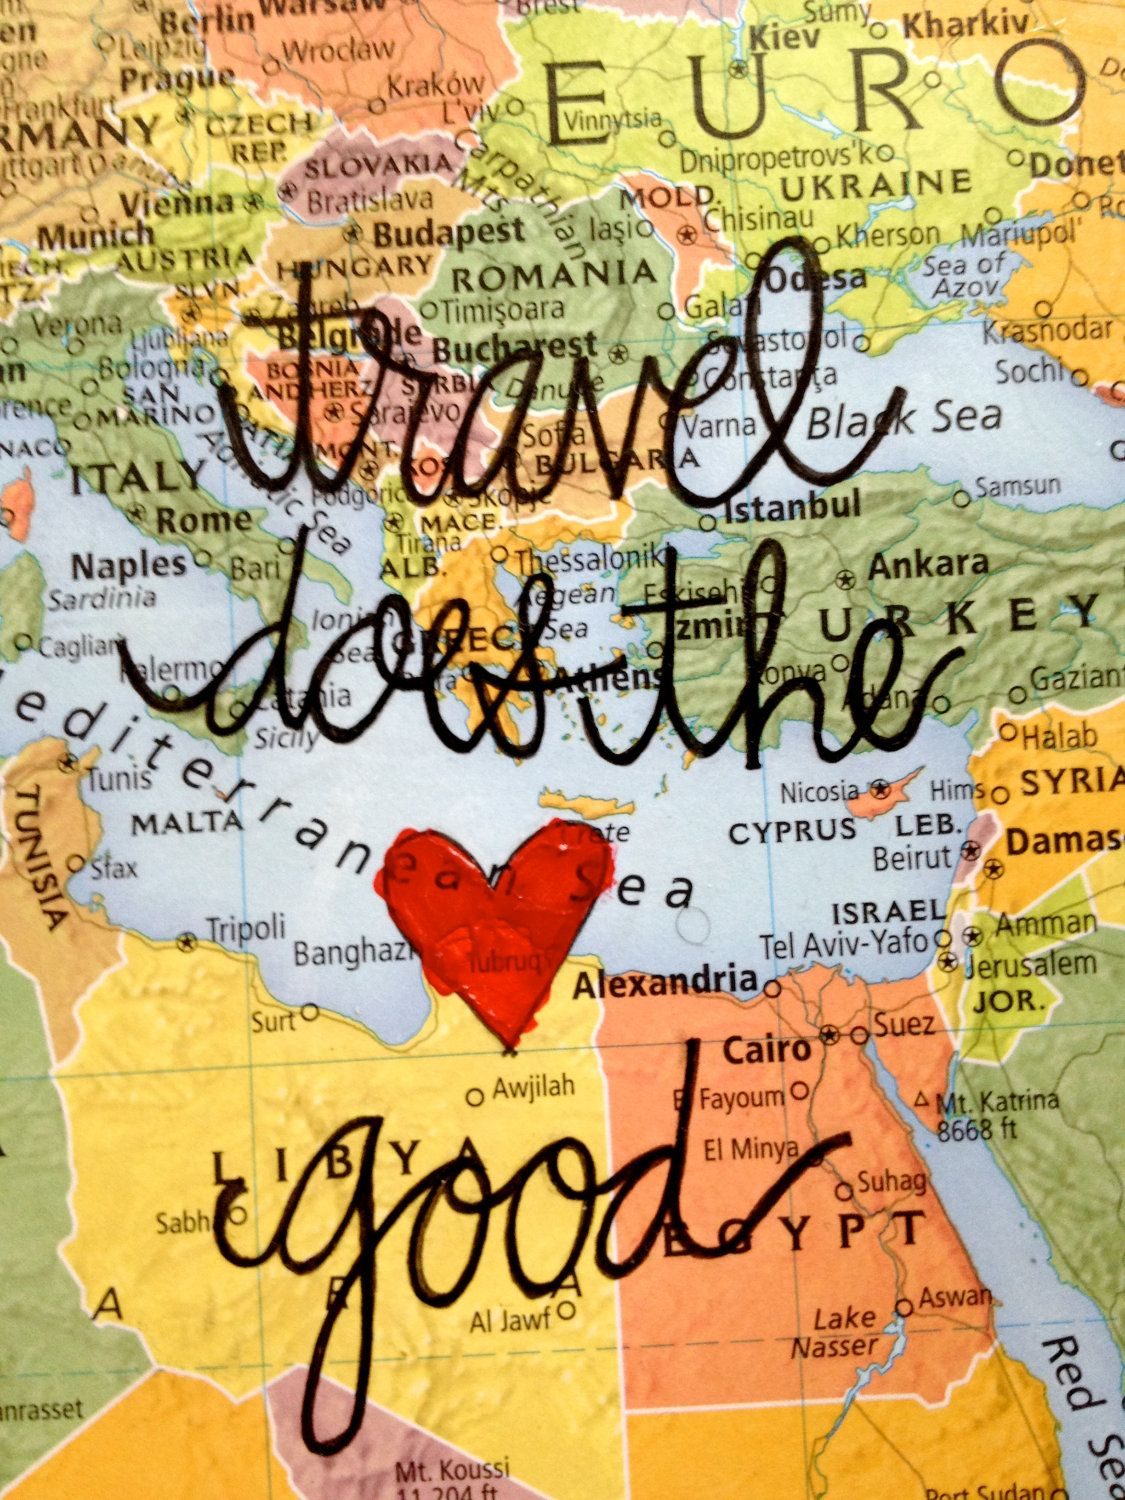 Travel Does the 3 Good travelquotes travel quote #0: b1b78c1992c26bbbe d0236ffda2